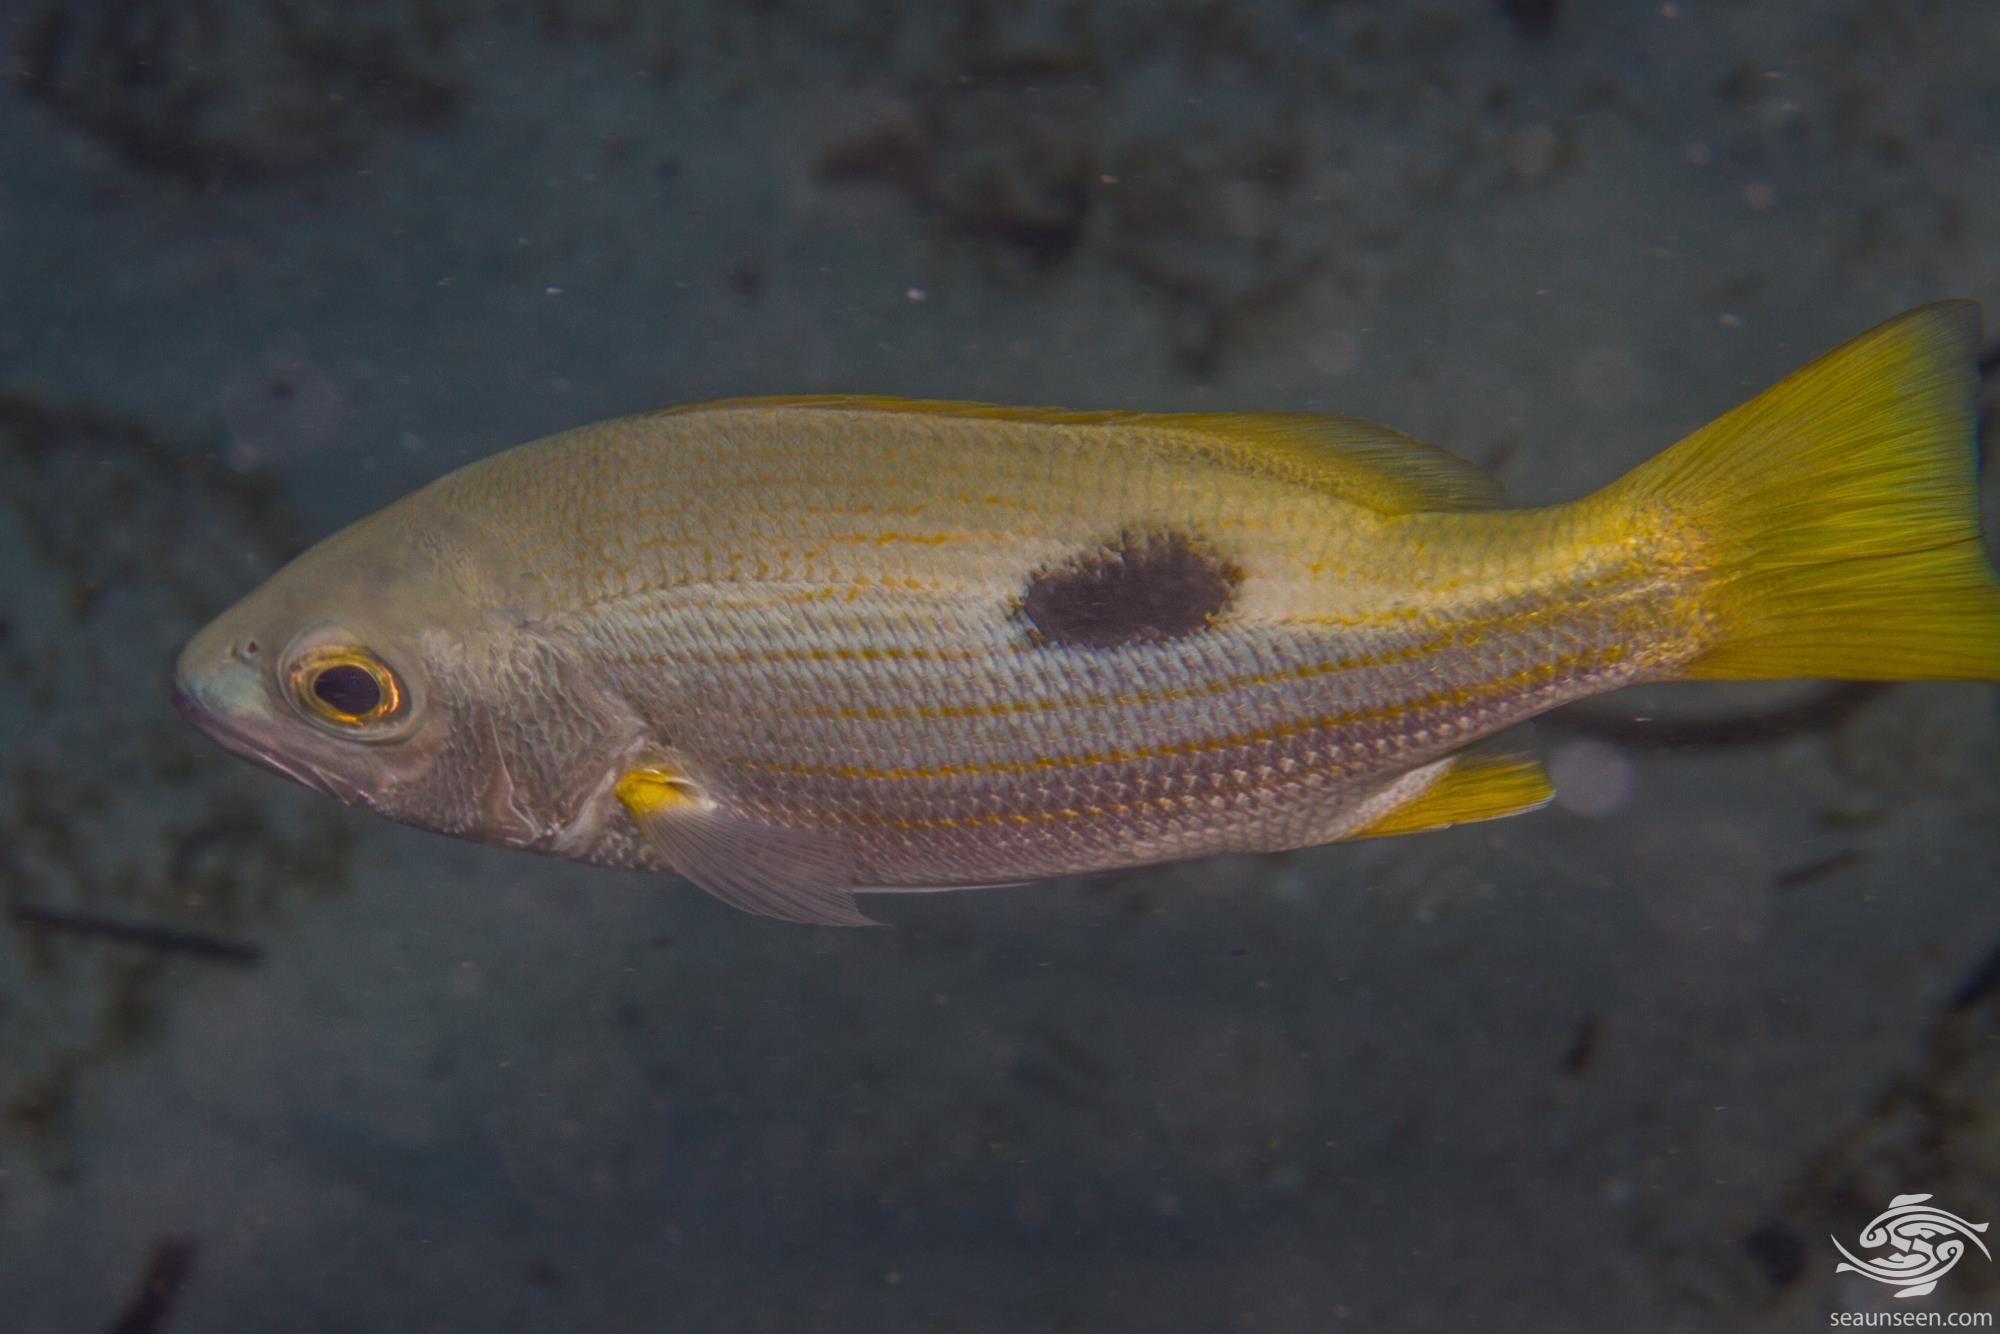 Ehrenberg's Snapper (Lutjanus ehrenbergii) is also known as the Blackspot Snapper and Ehrenberg's Seaperch.